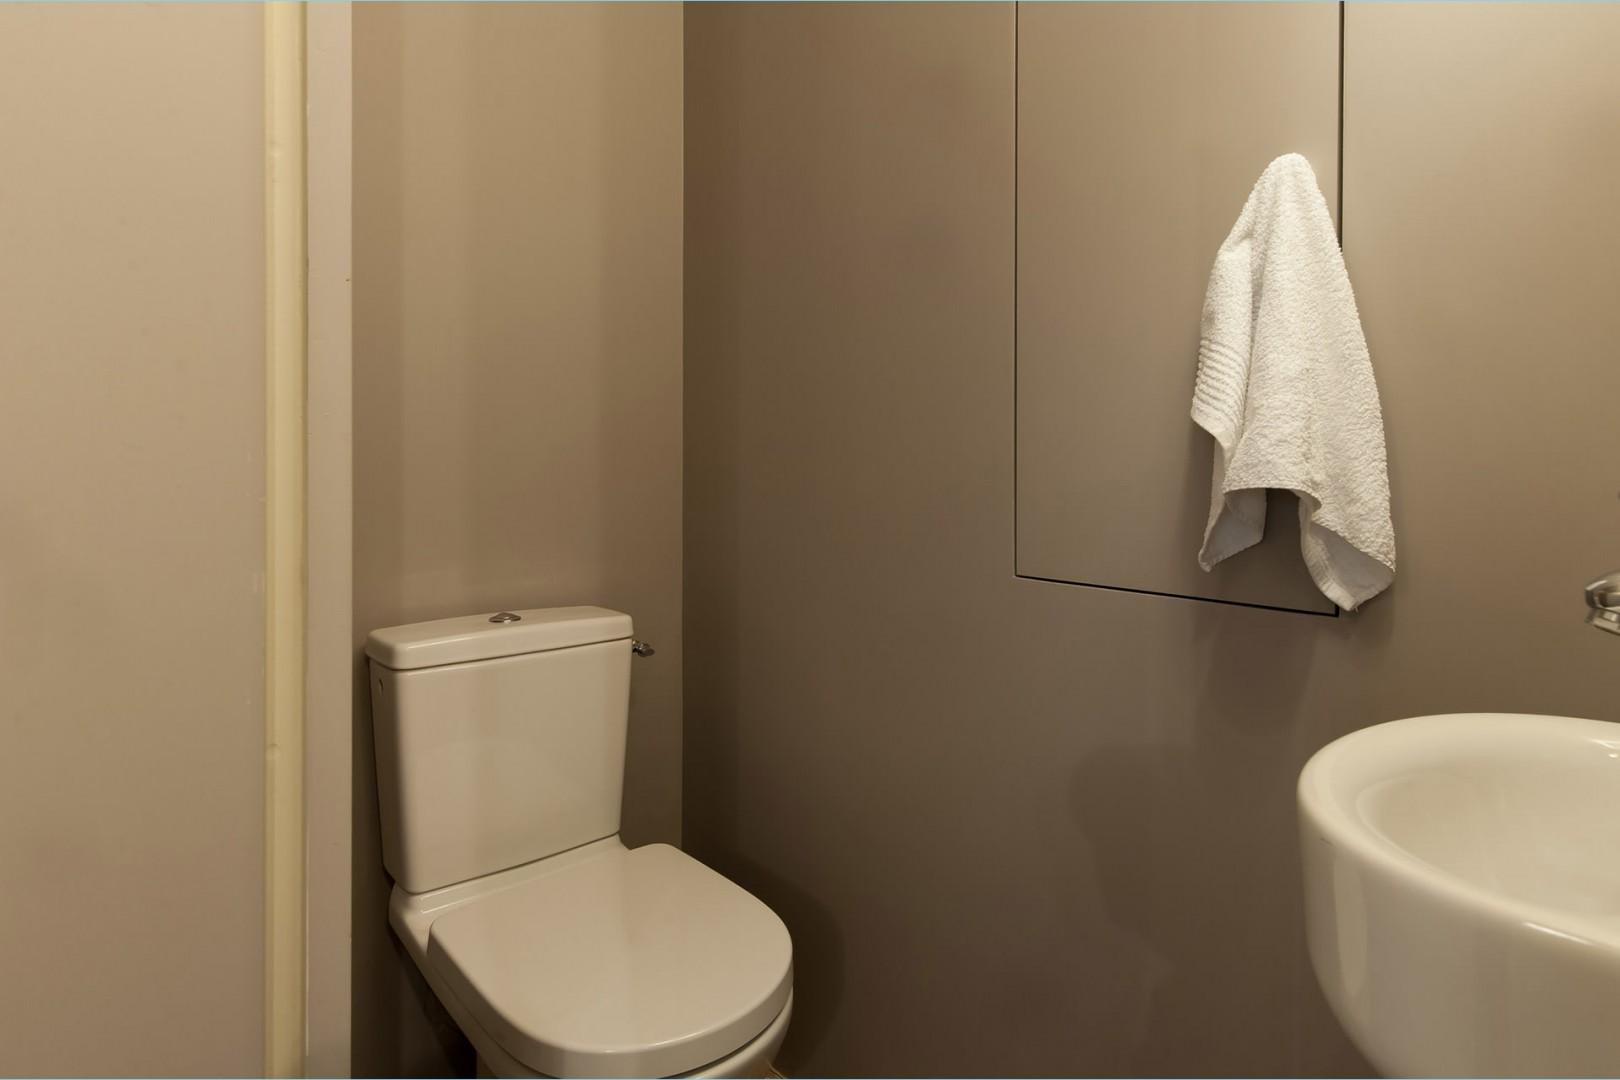 There is a practical separate half bath with a toilet and sink.